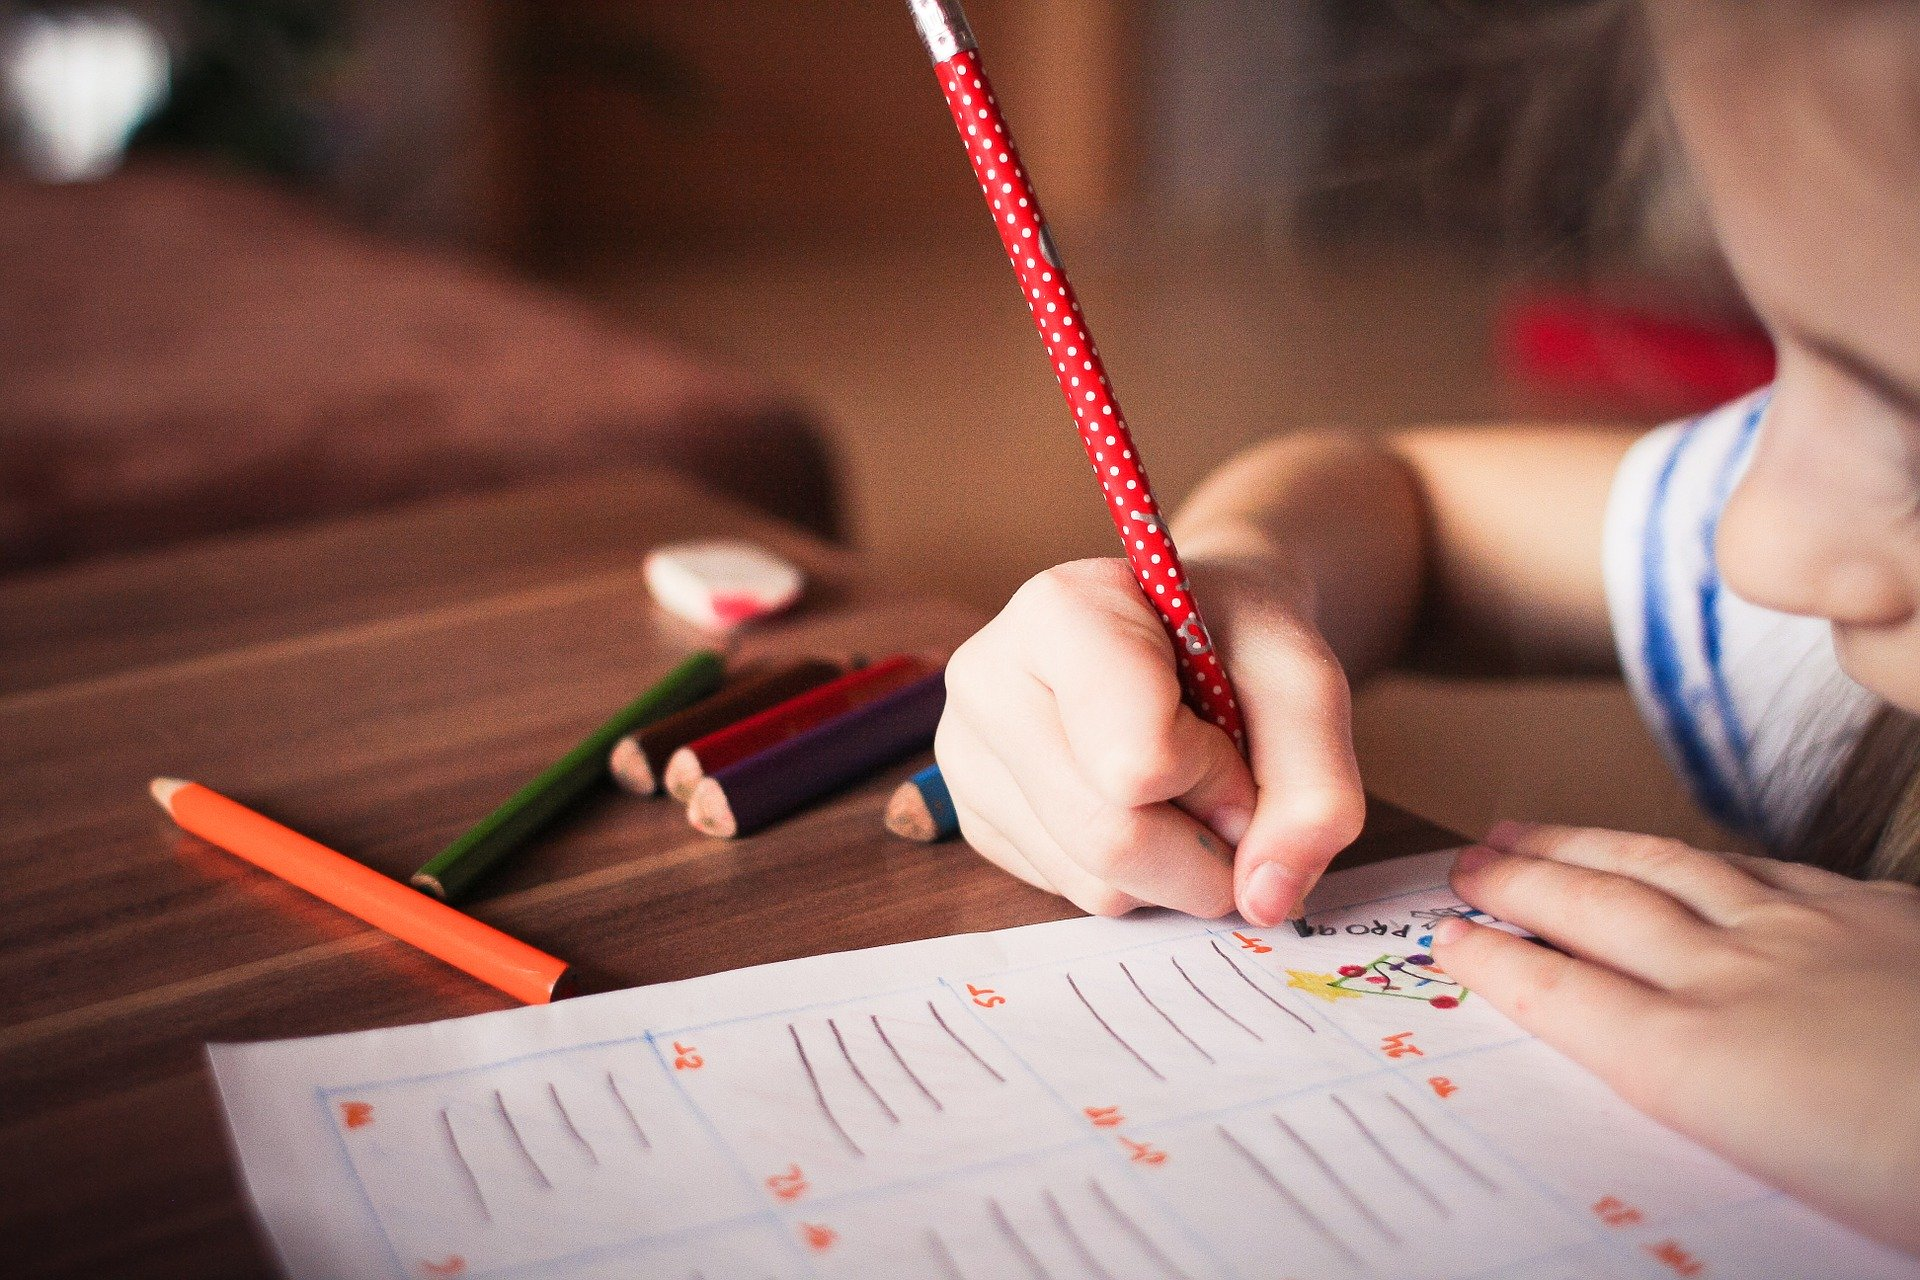 The Possibility of an Upsurge in K12 Homeschooling Amid COVID-19